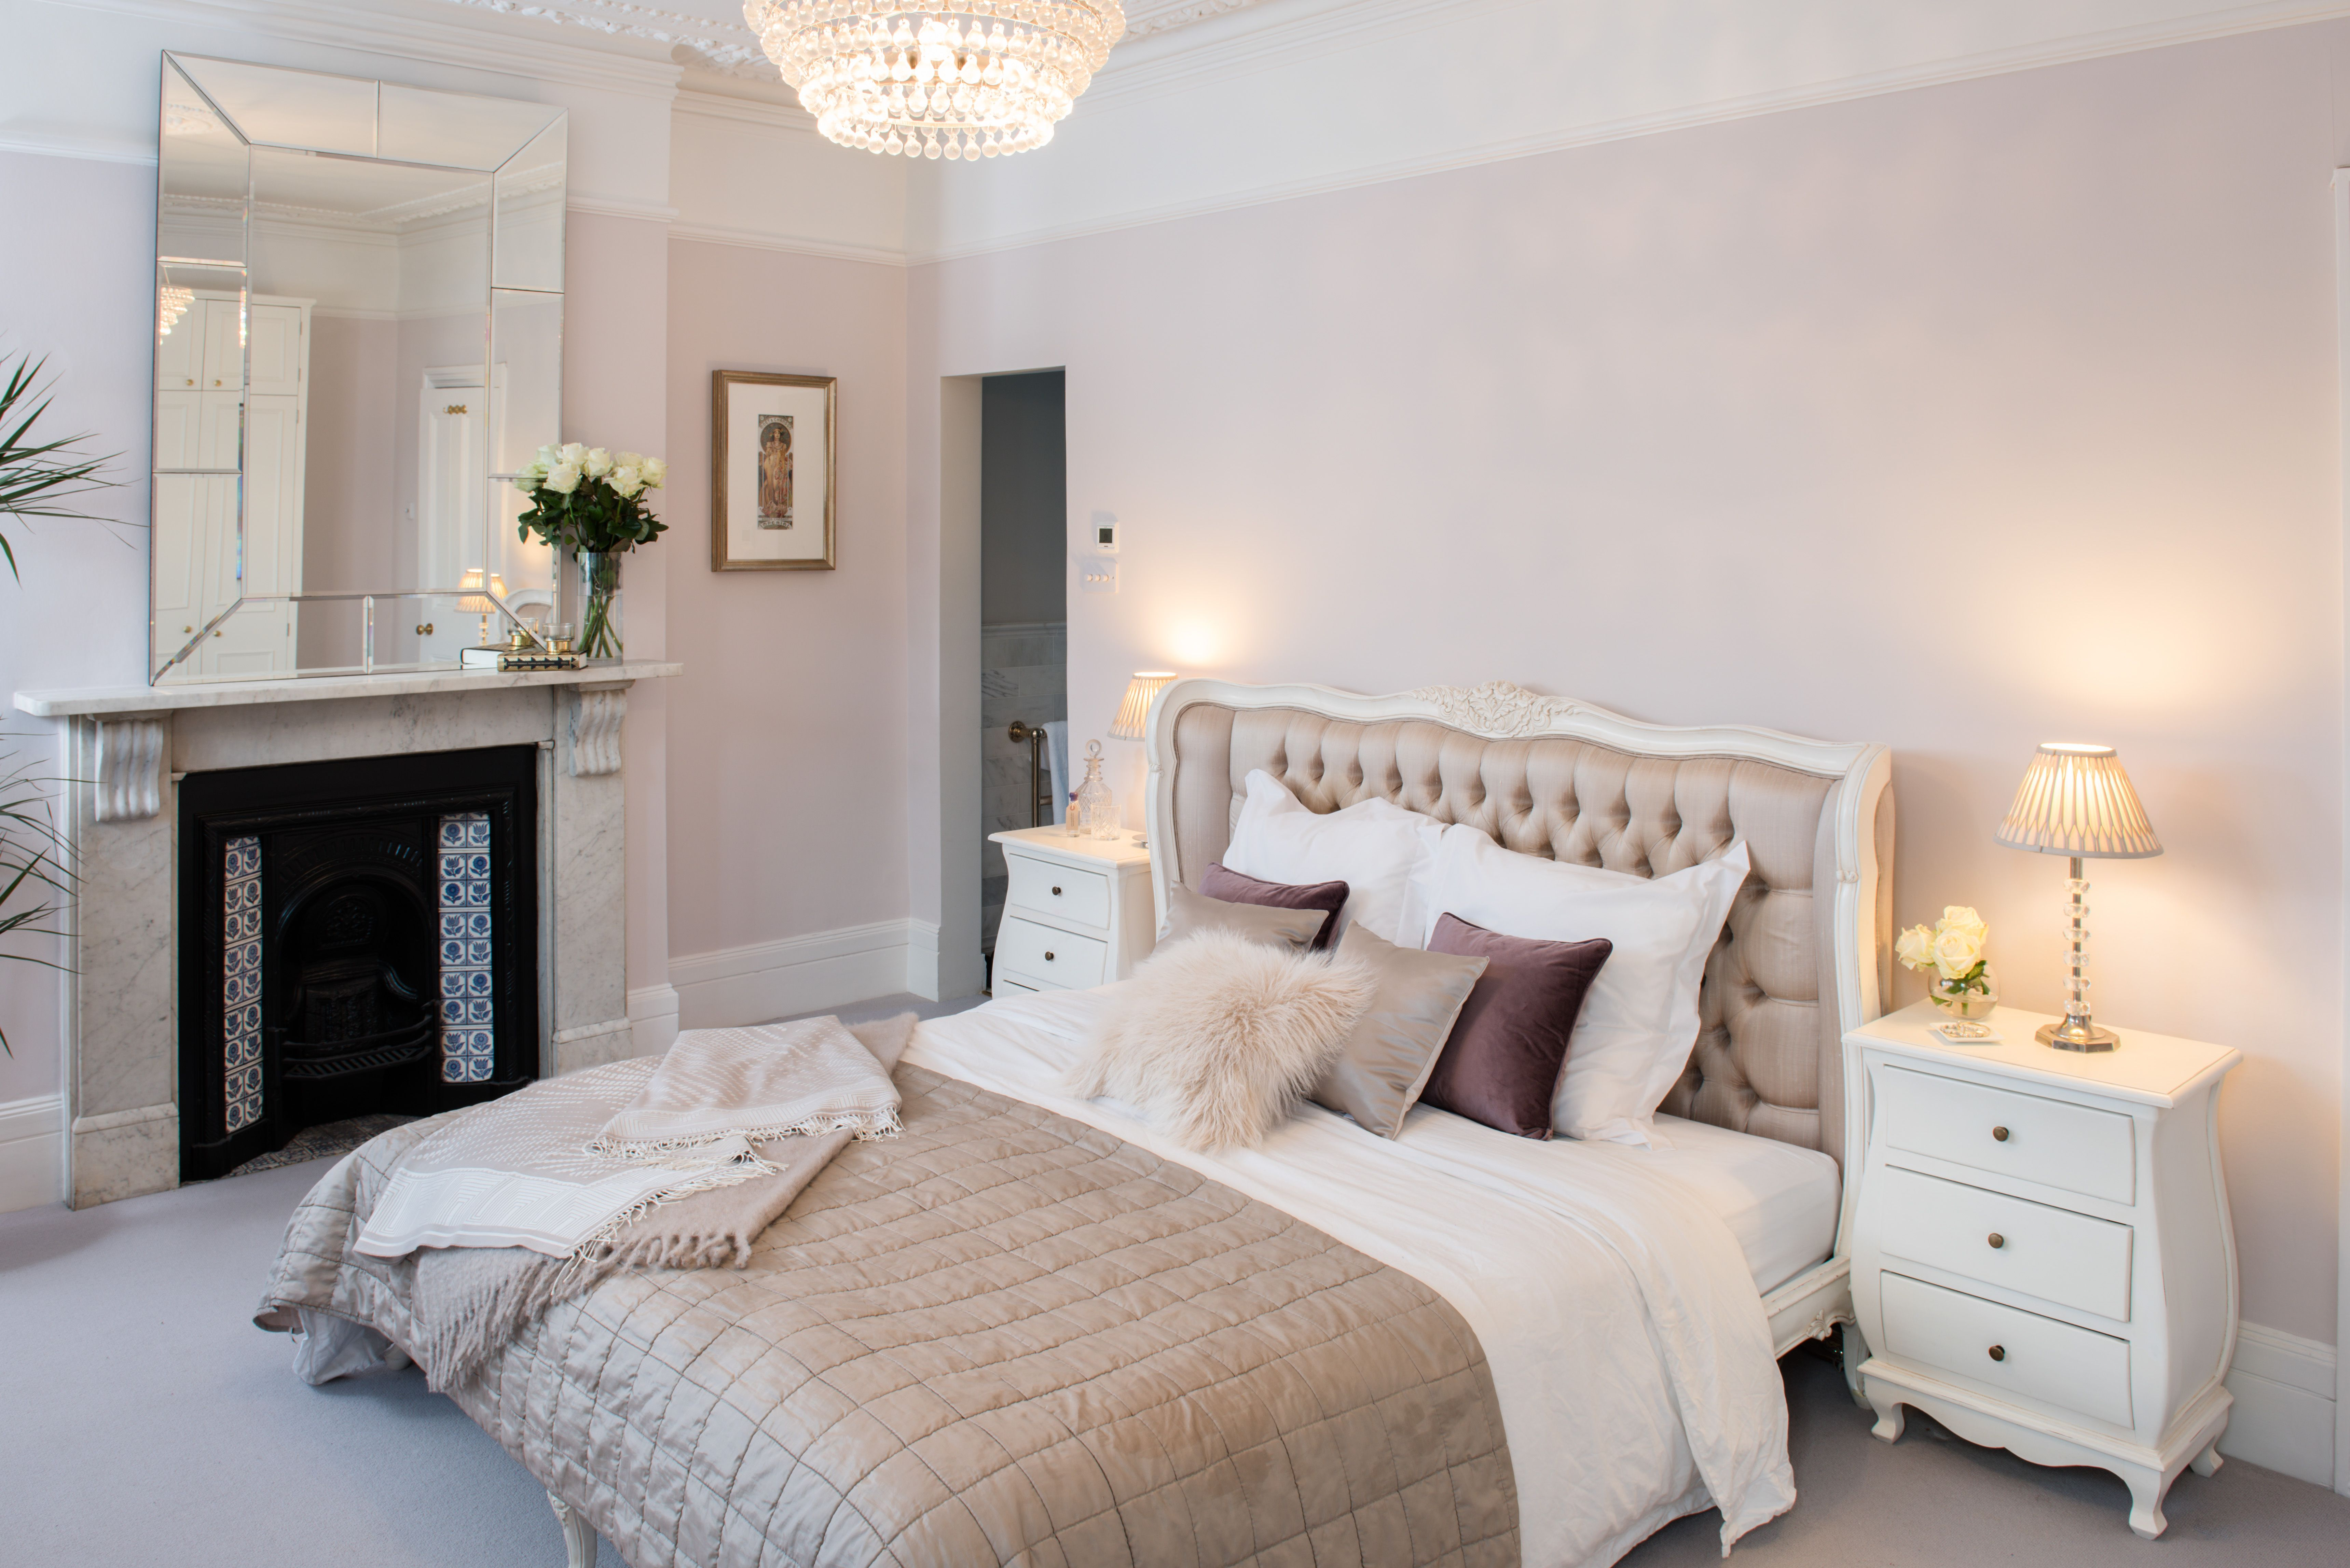 Luxury French style master bedroom with superking